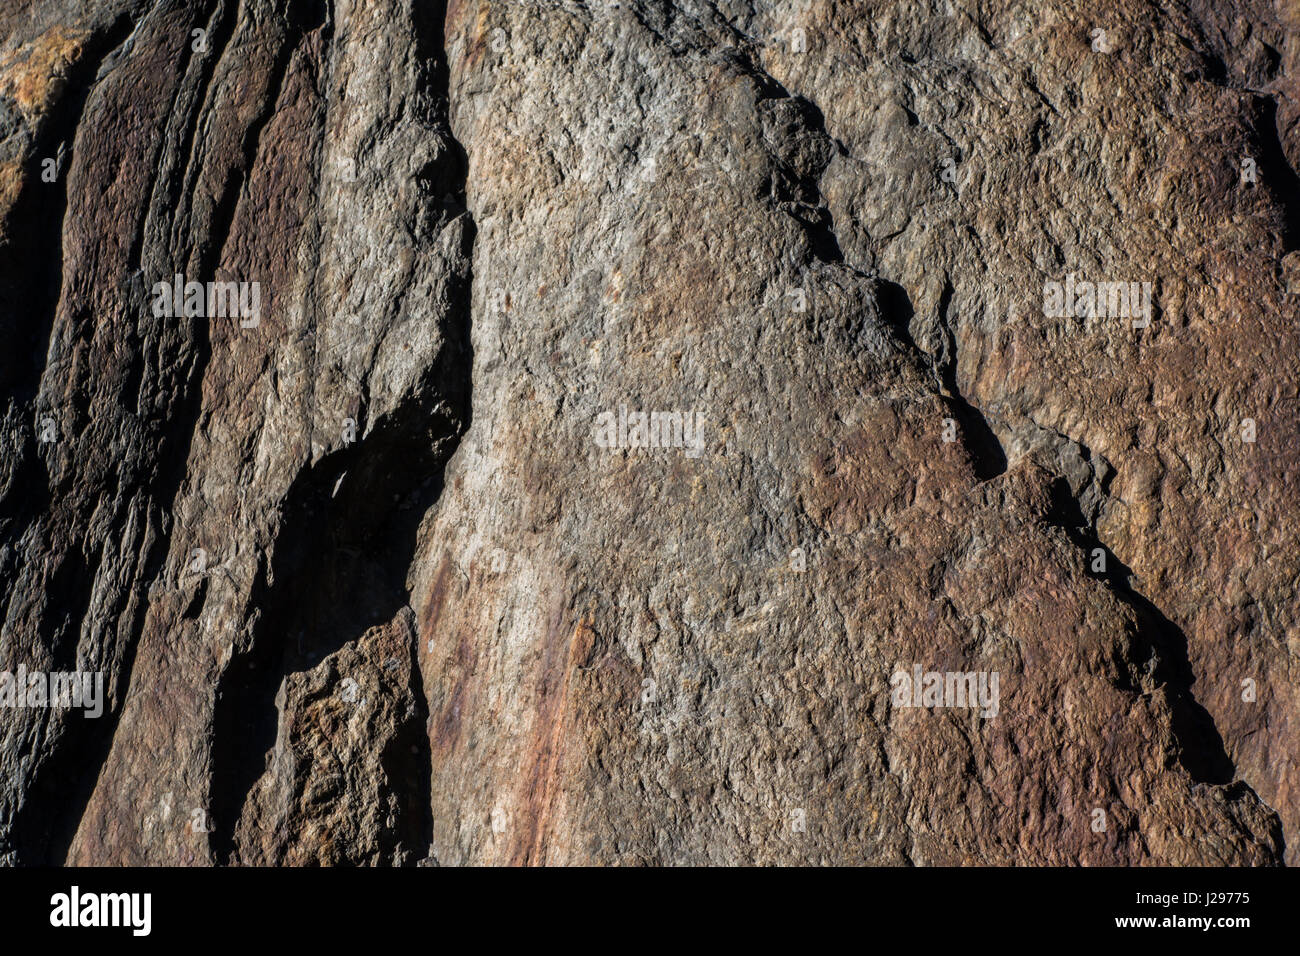 Detail of granite rock with traces of red iron in surface weathered and with signs of erosion Stock Photo